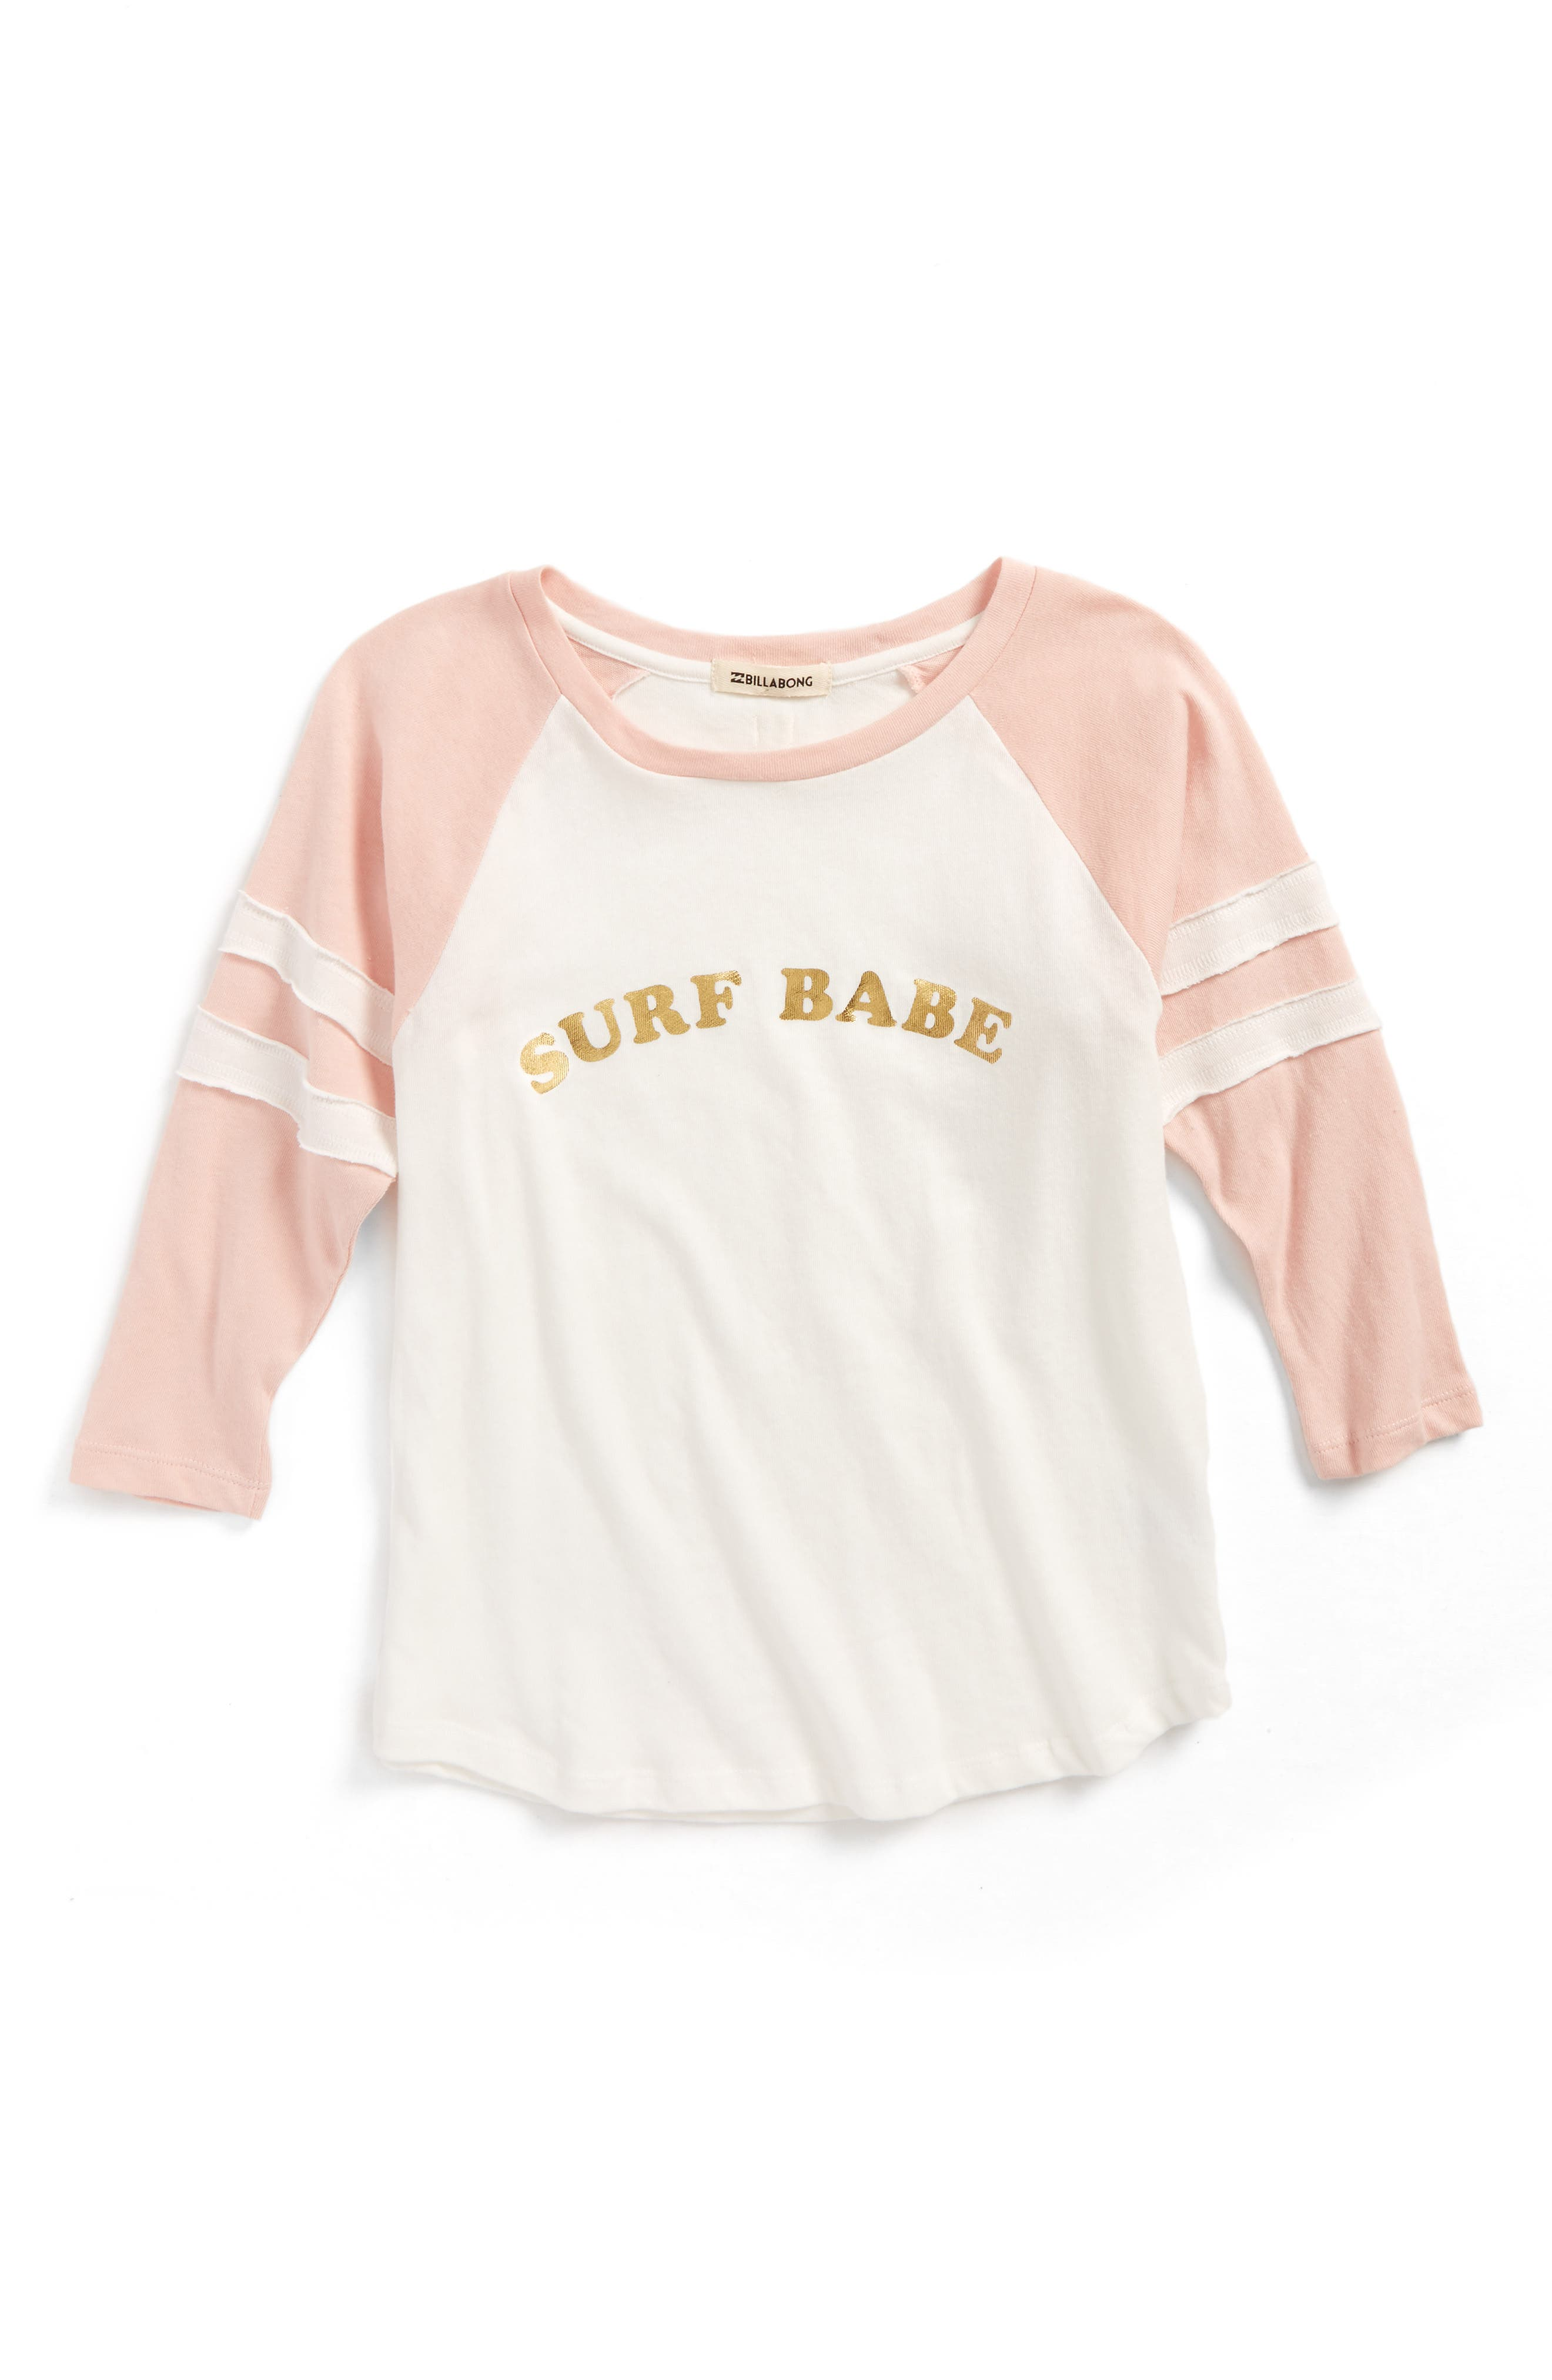 Surf Babe Graphic Tee,                             Alternate thumbnail 2, color,